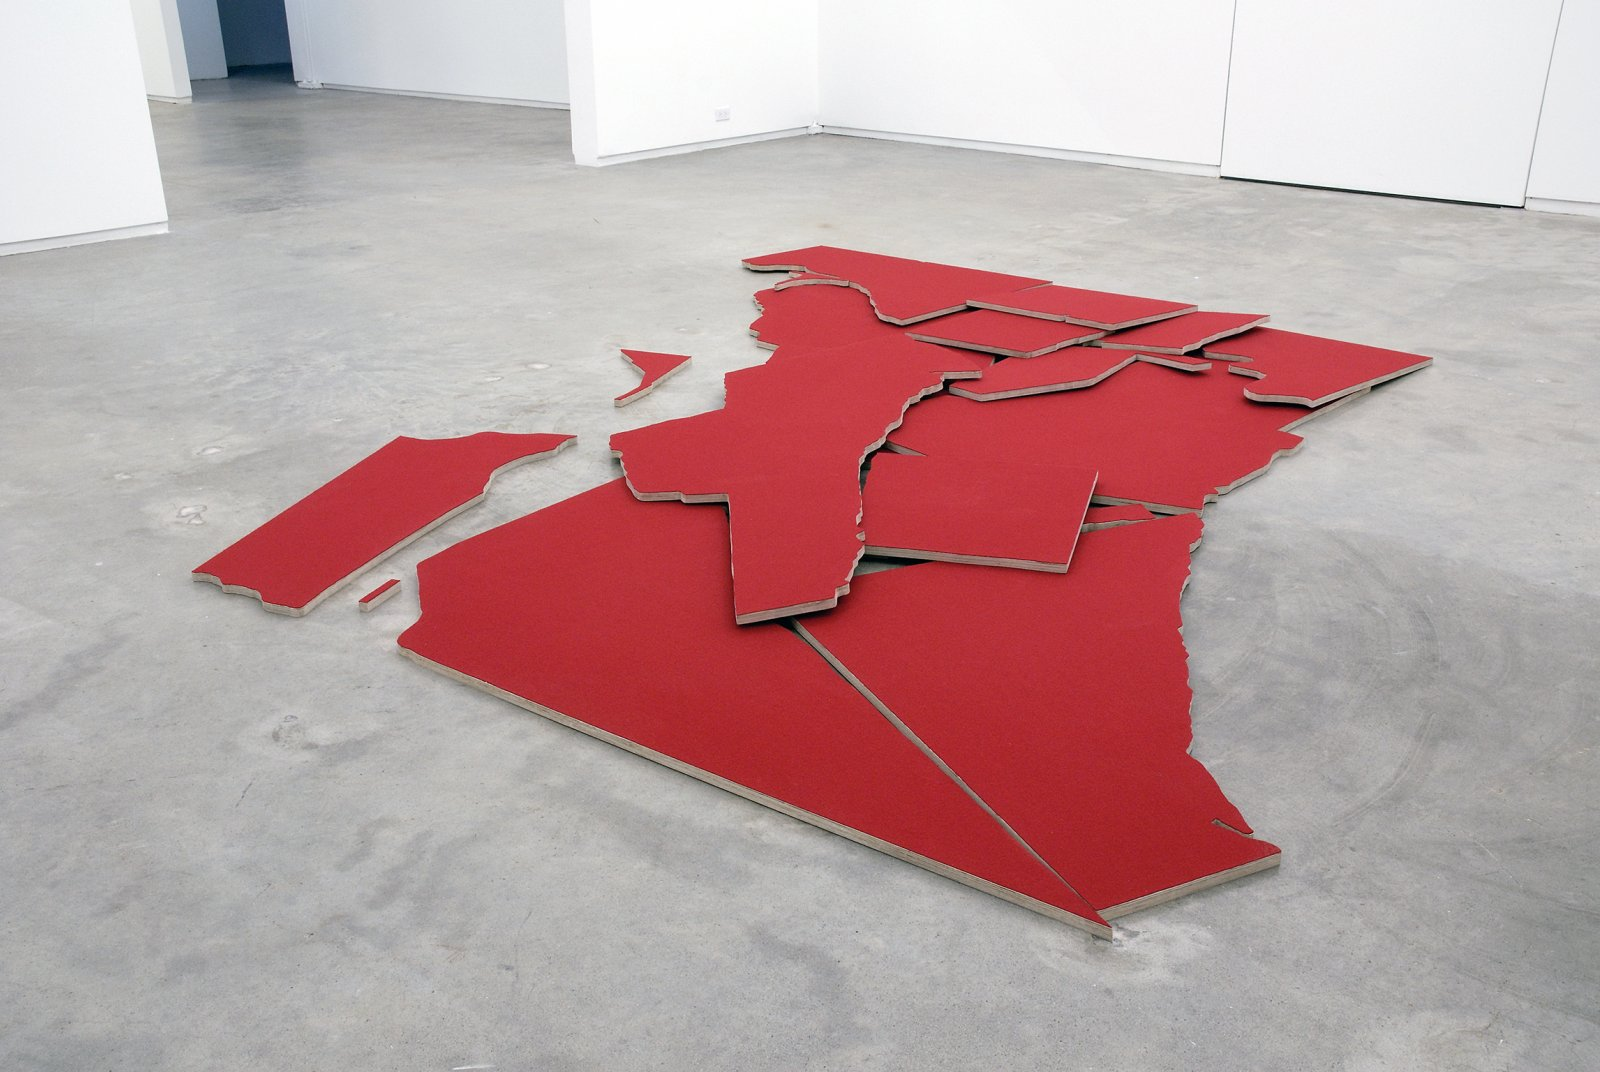 Brian Jungen,Greater Vancouver, 2007, 18 baltic plywood cutouts, wool fabric, 126 x 132 x 3 in. (320 x 335 x 8 cm)